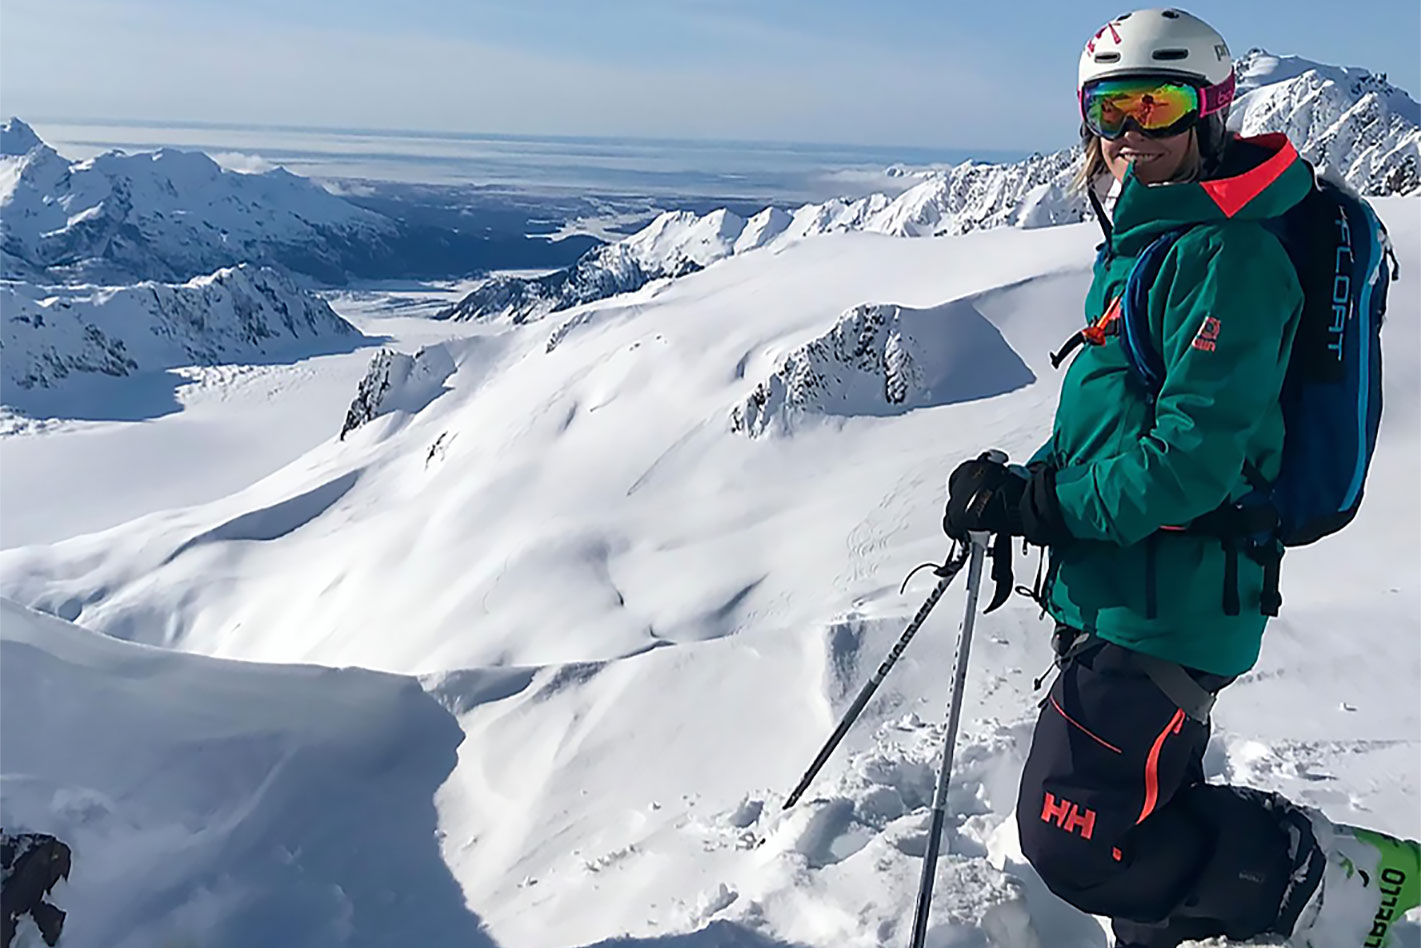 Backcountry skier Jessica Quinn